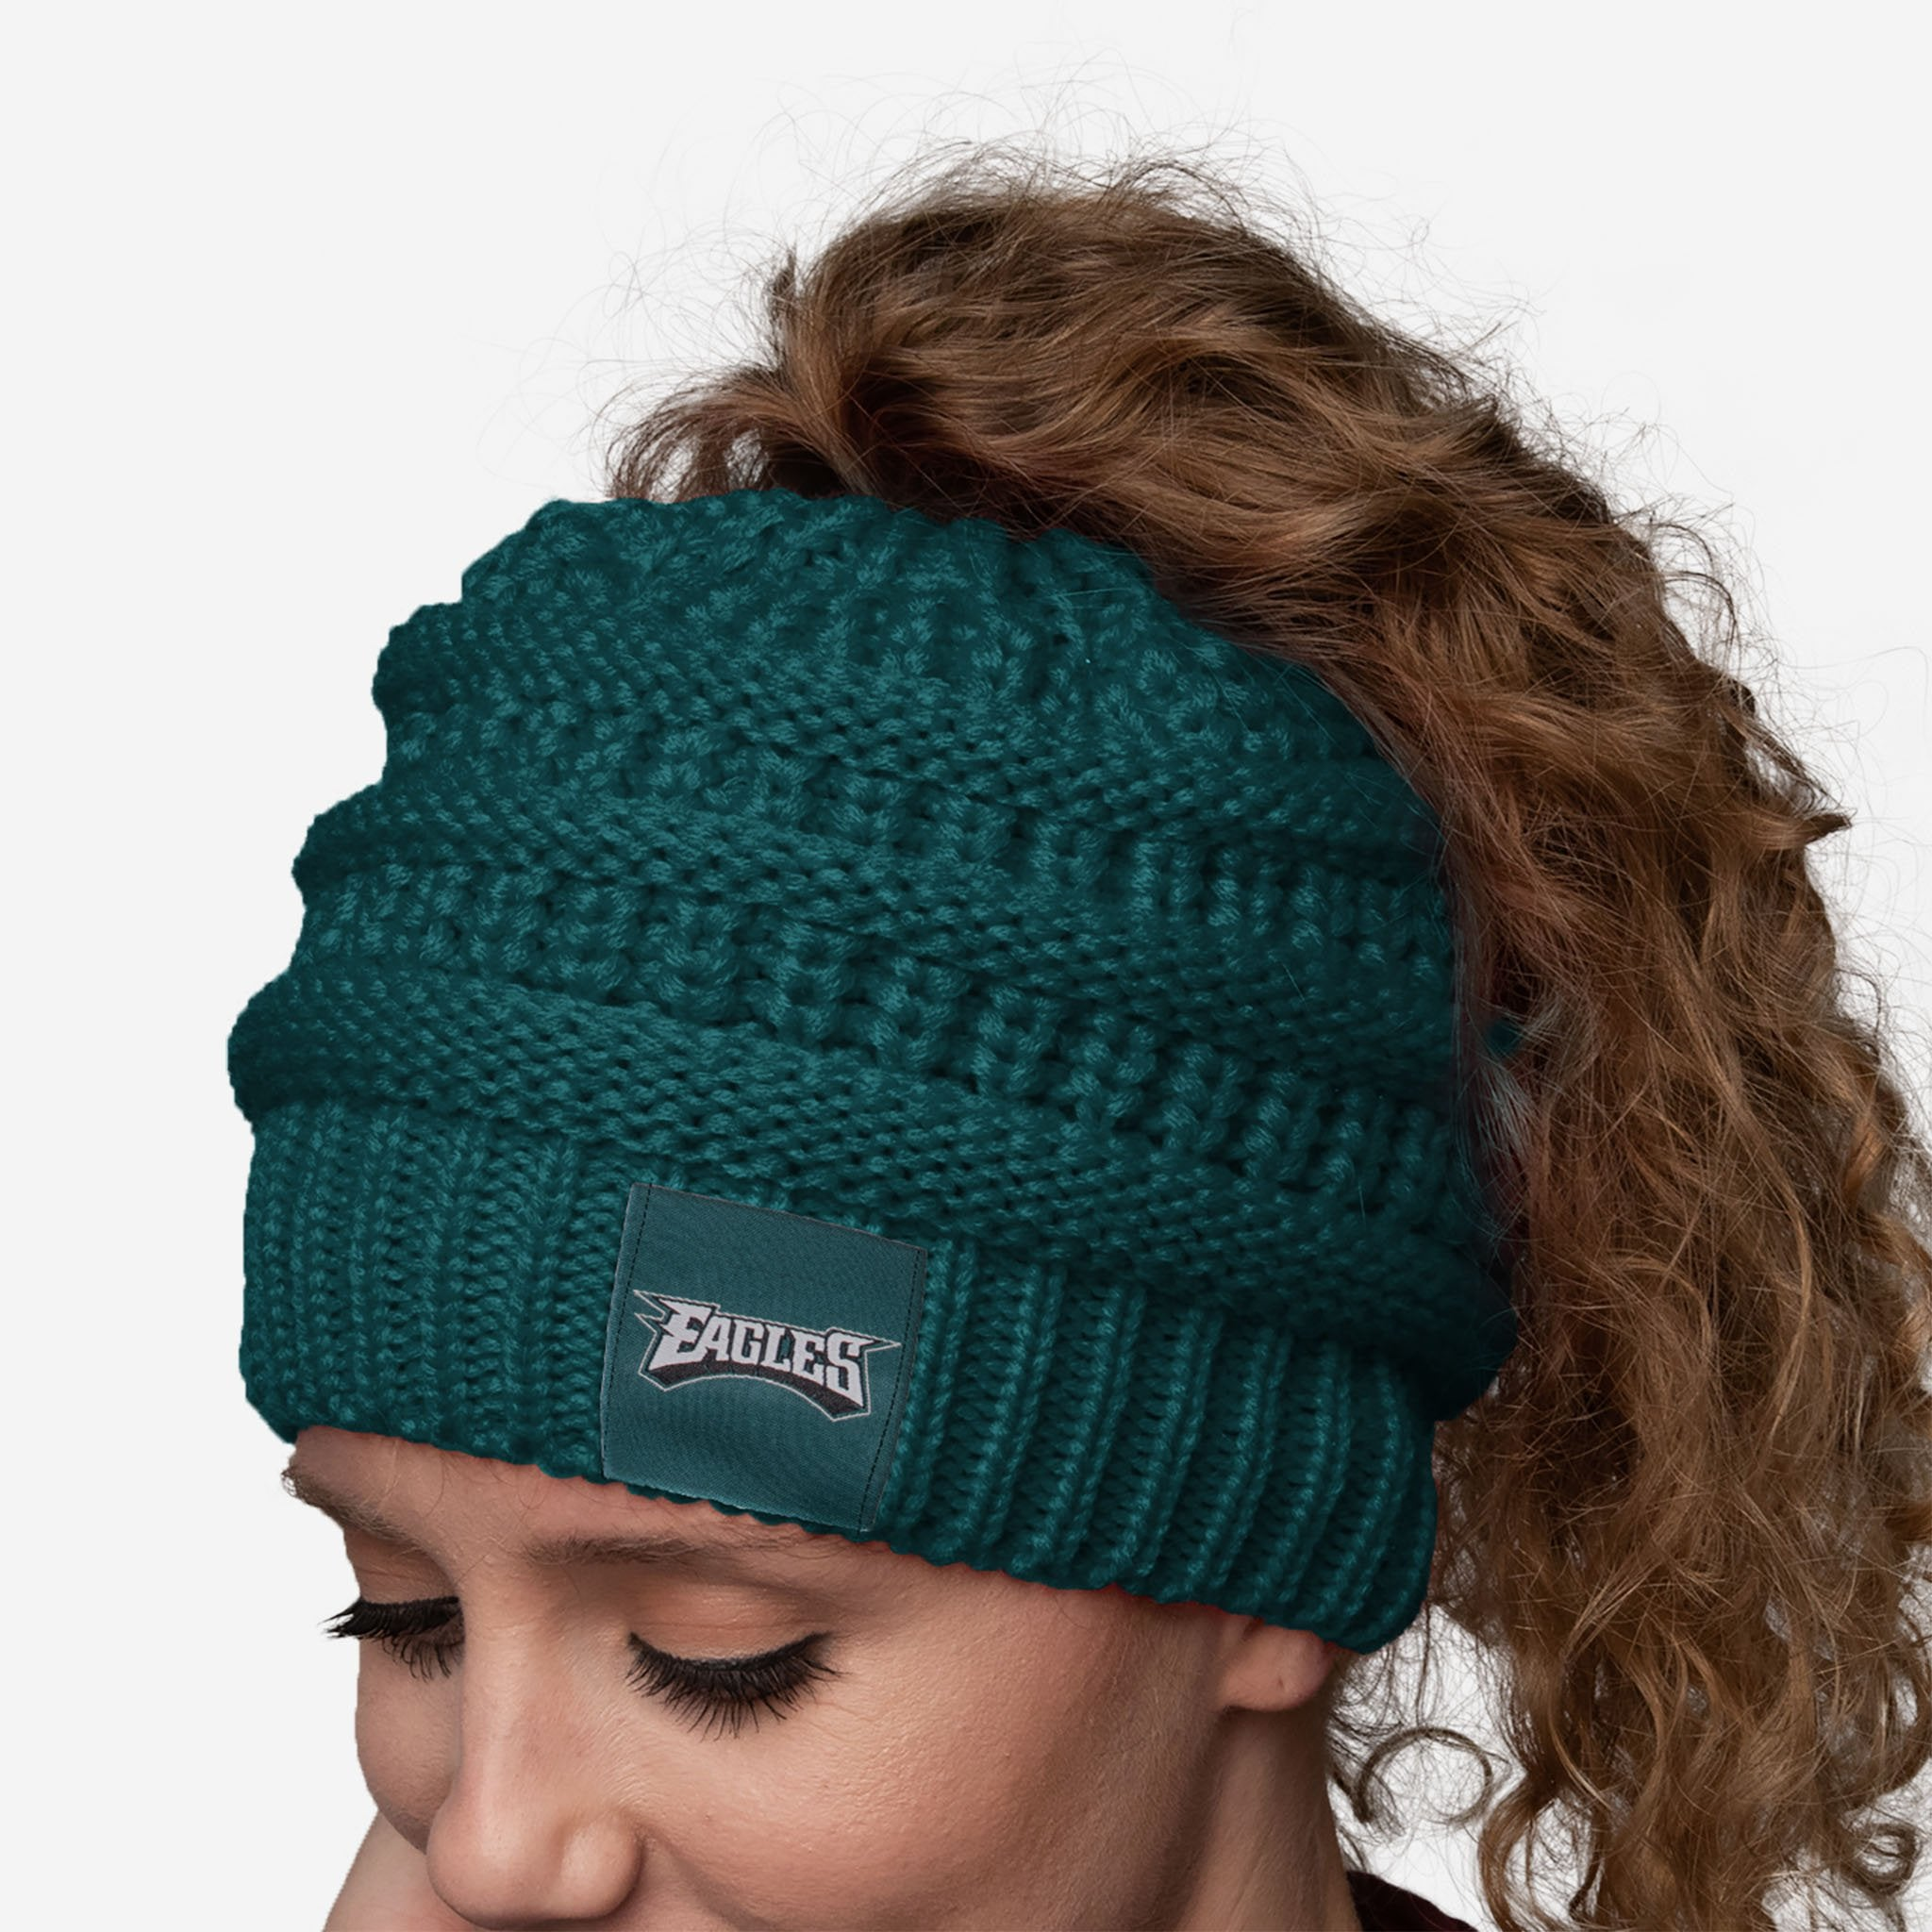 reputable site 9384a 41fe7 Philadelphia Eagles Womens Ponytail Beanie